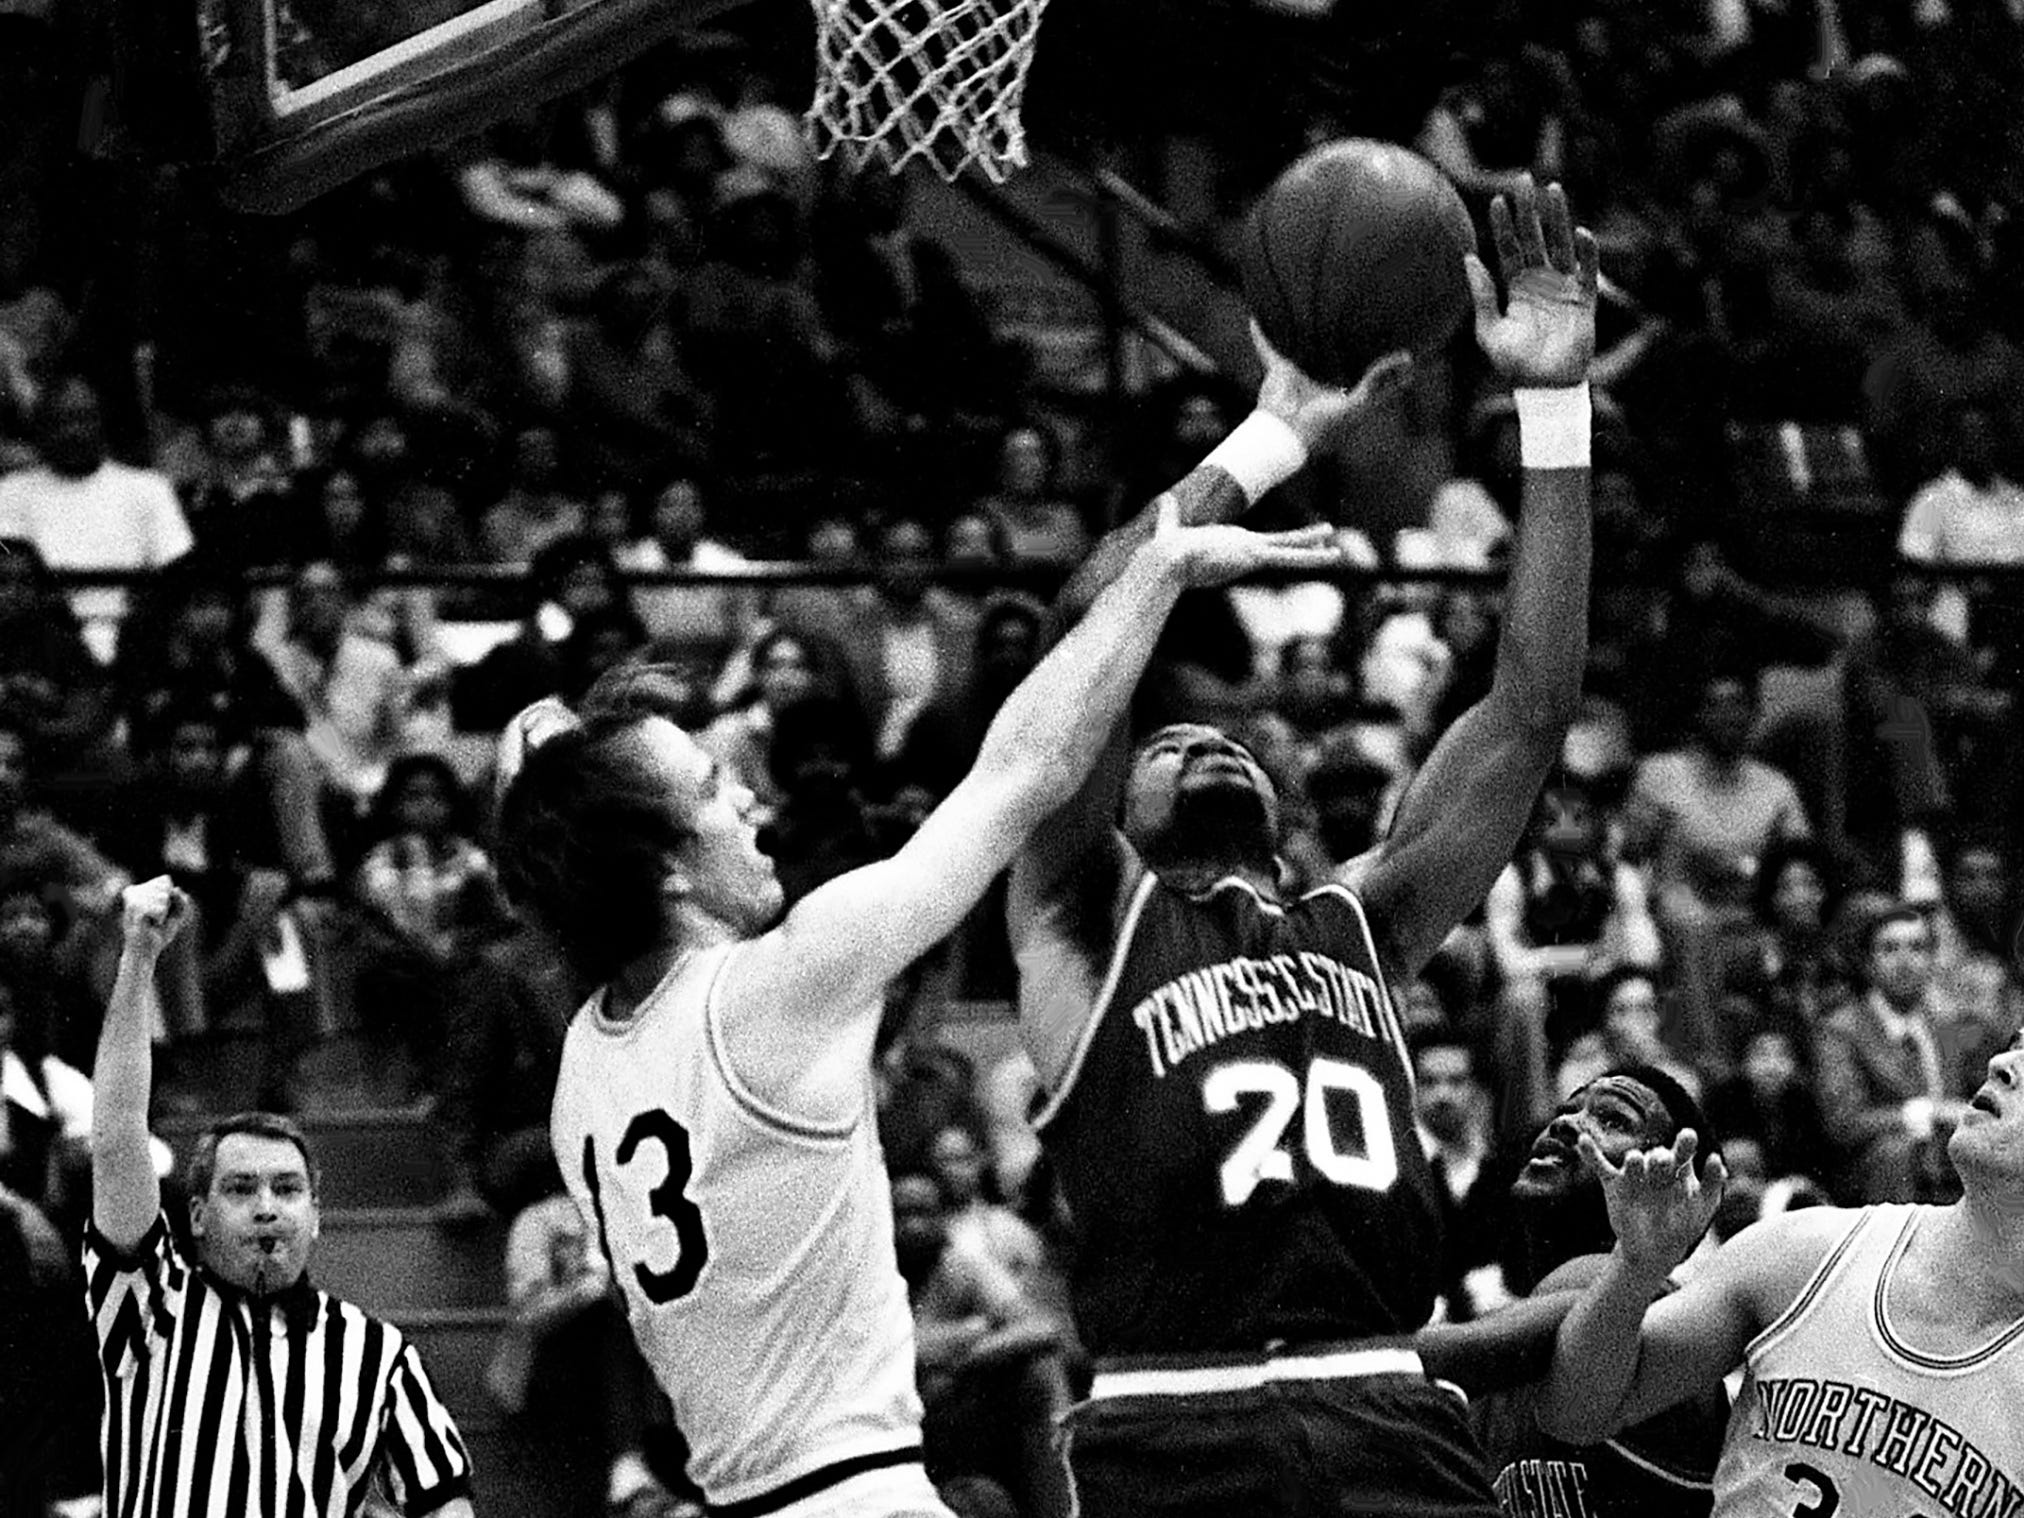 Tennessee State's Billy Tucker (20) takes a shot inside despite the double team of Northern Kentucky defenders at Kean's Little Garden on Feb. 3, 1979. Tucker scored 11 points in Tennessee State's 84-73 victory.